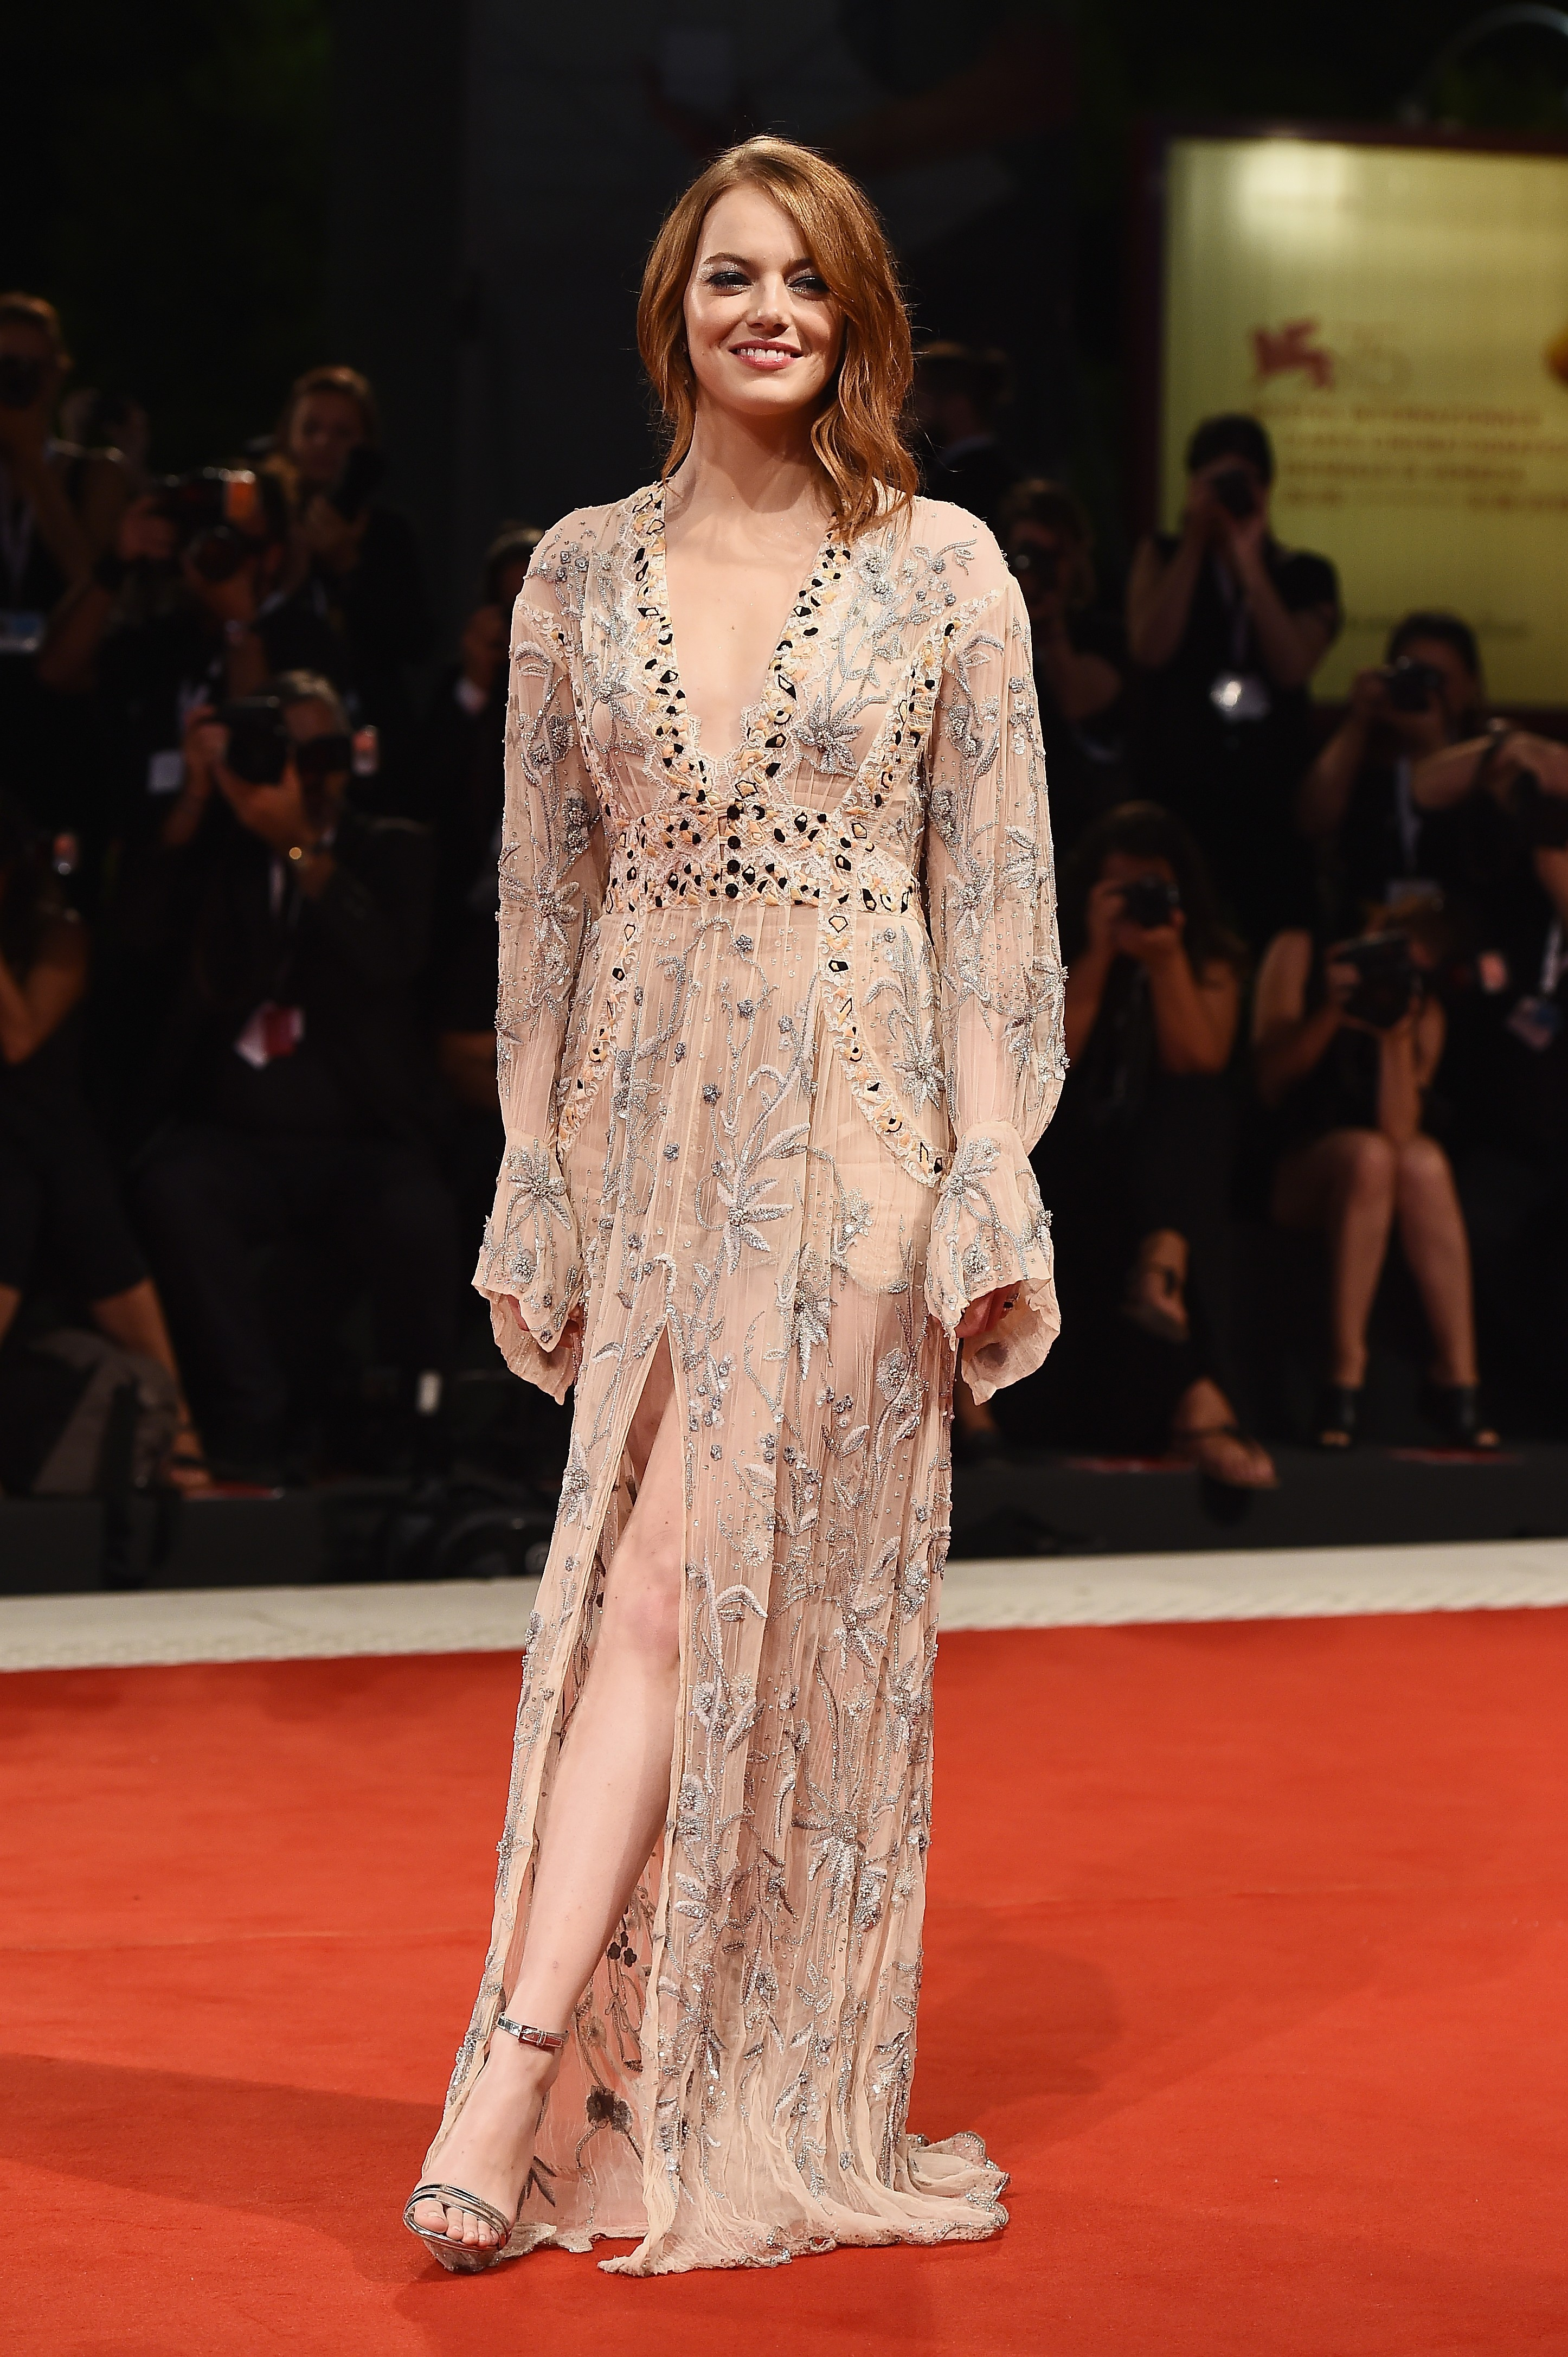 VENICE, ITALY - AUGUST 30:  Emma Stone walks the red carpet ahead of the 'The Favourite' screening during the 75th Venice Film Festival at Sala Grande on August 30, 2018 in Venice, Italy.  (Photo by Stefania D'Alessandro/WireImage) (Foto: WireImage)